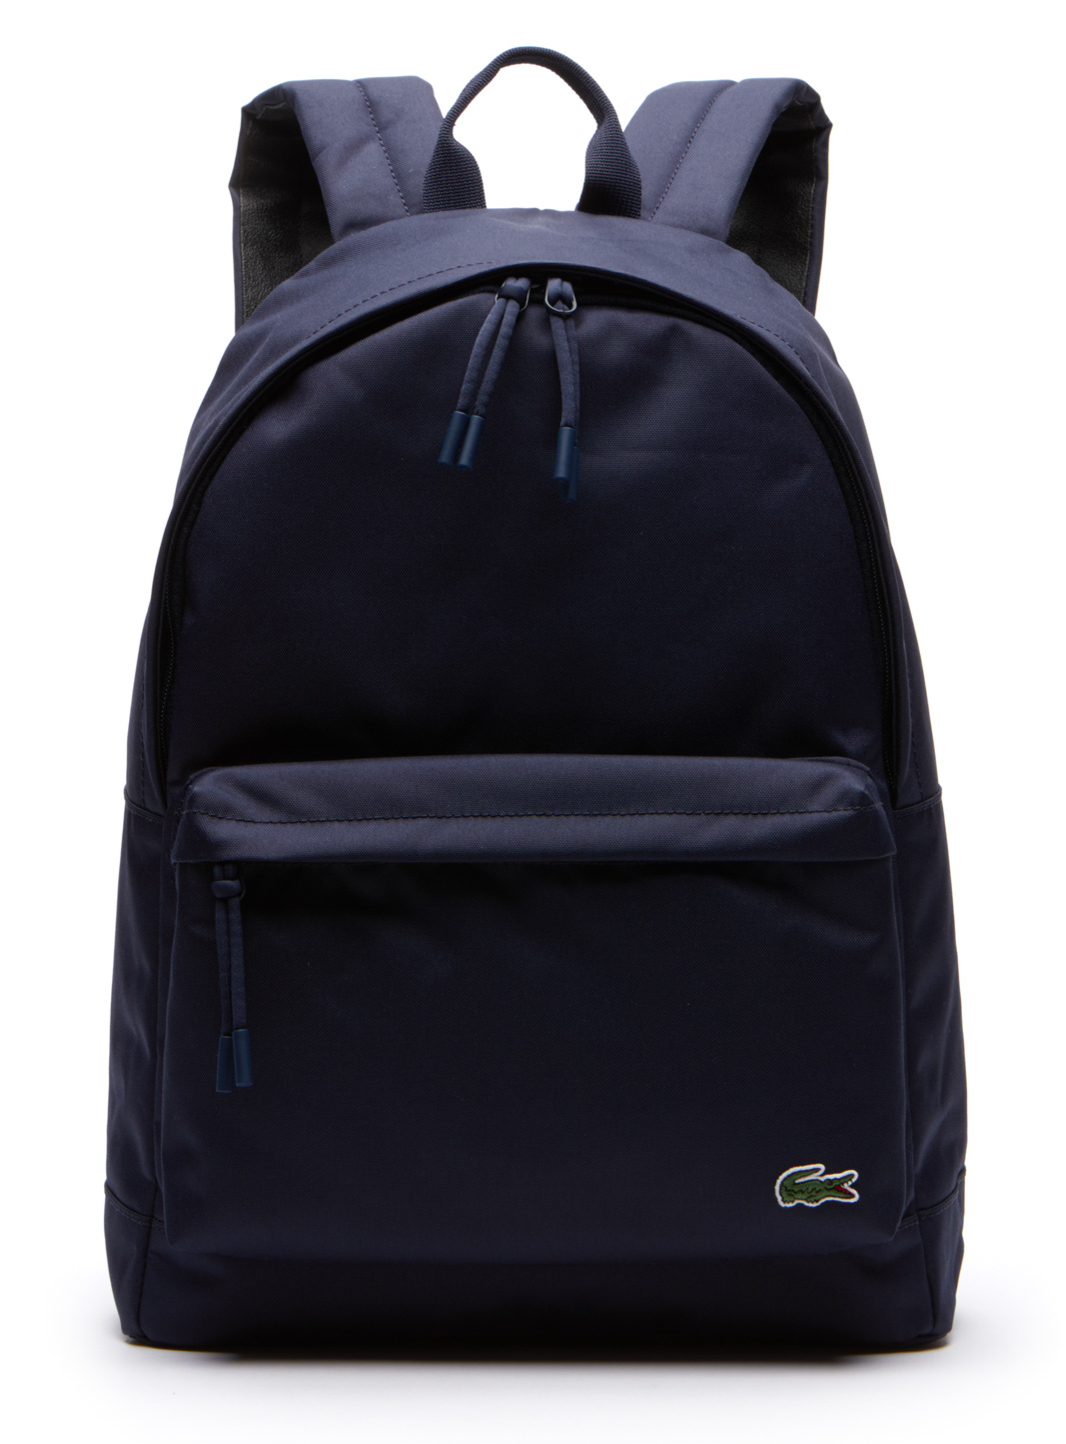 Neocroc À Peacoat Backpack Dos Lacoste Sac Ebay aw6ztt